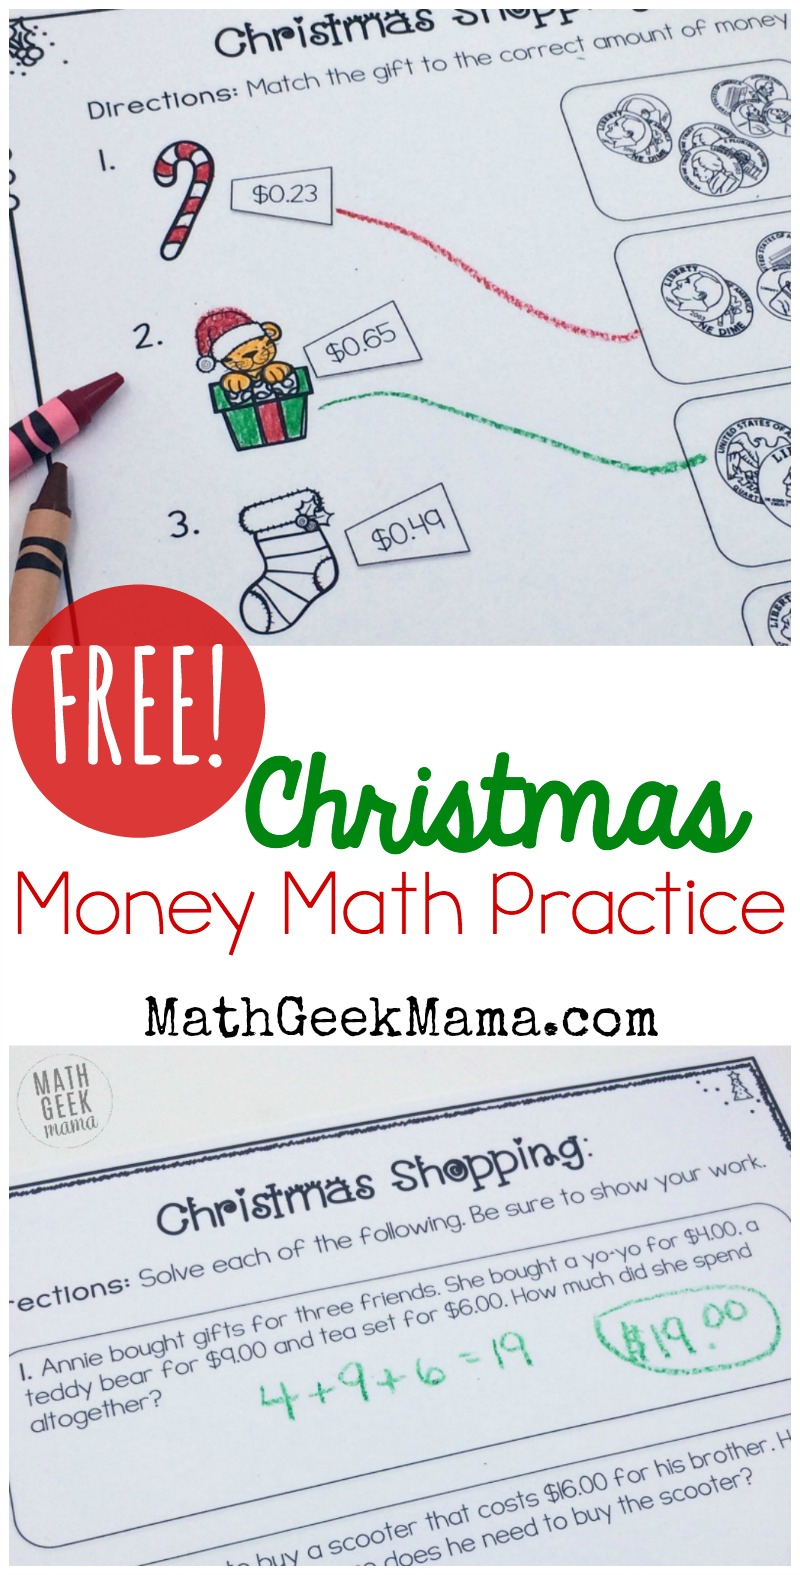 Christmas Shopping Money Math Worksheets Free Practice 4Th